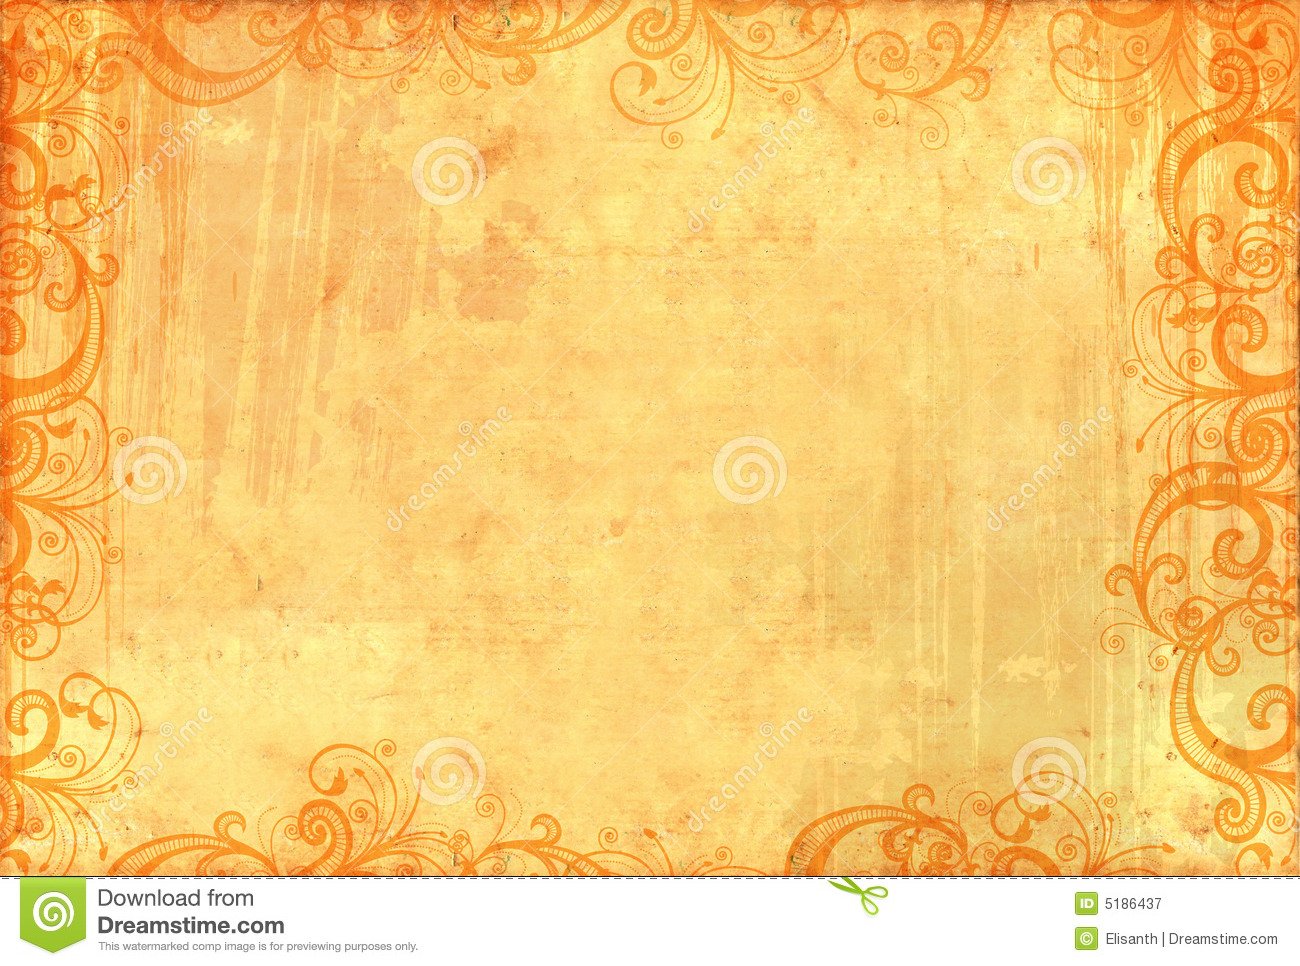 Old Textured Wallpaper With Floral Patterns Royalty Free